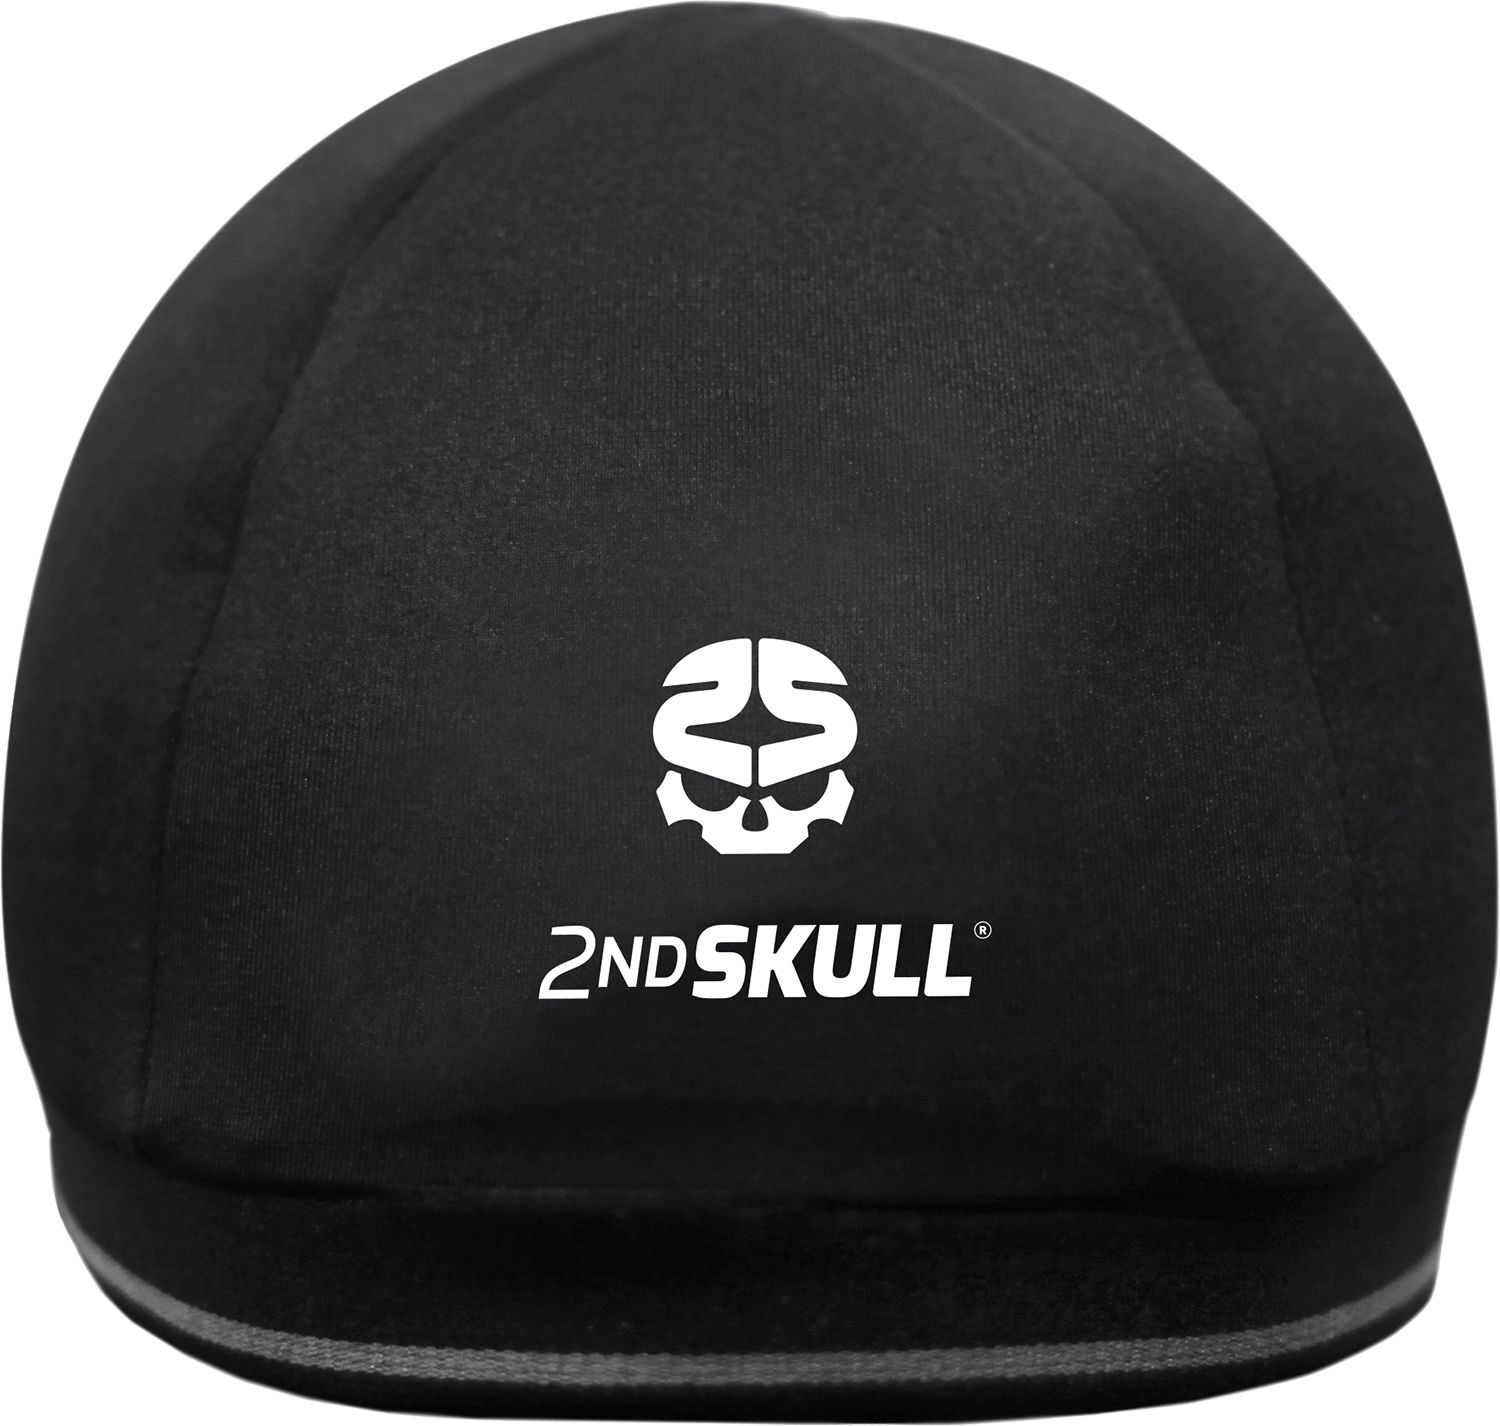 2nd Skull Protective Skull Cap DICKS Sporting Goods